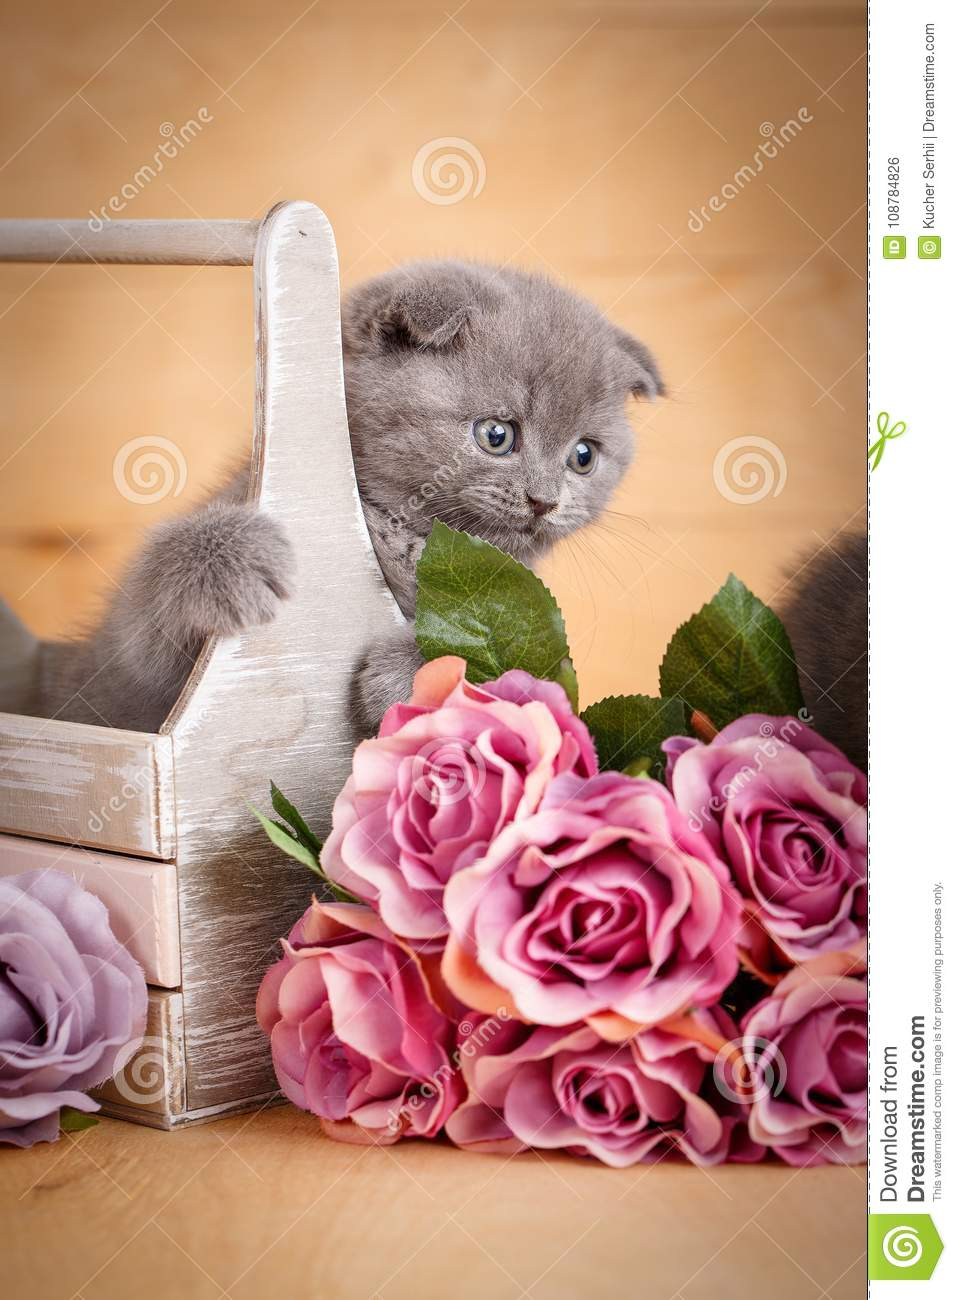 Scottish Fold Cat In Decorative Wooden Box Near Bouquet Of Flowers